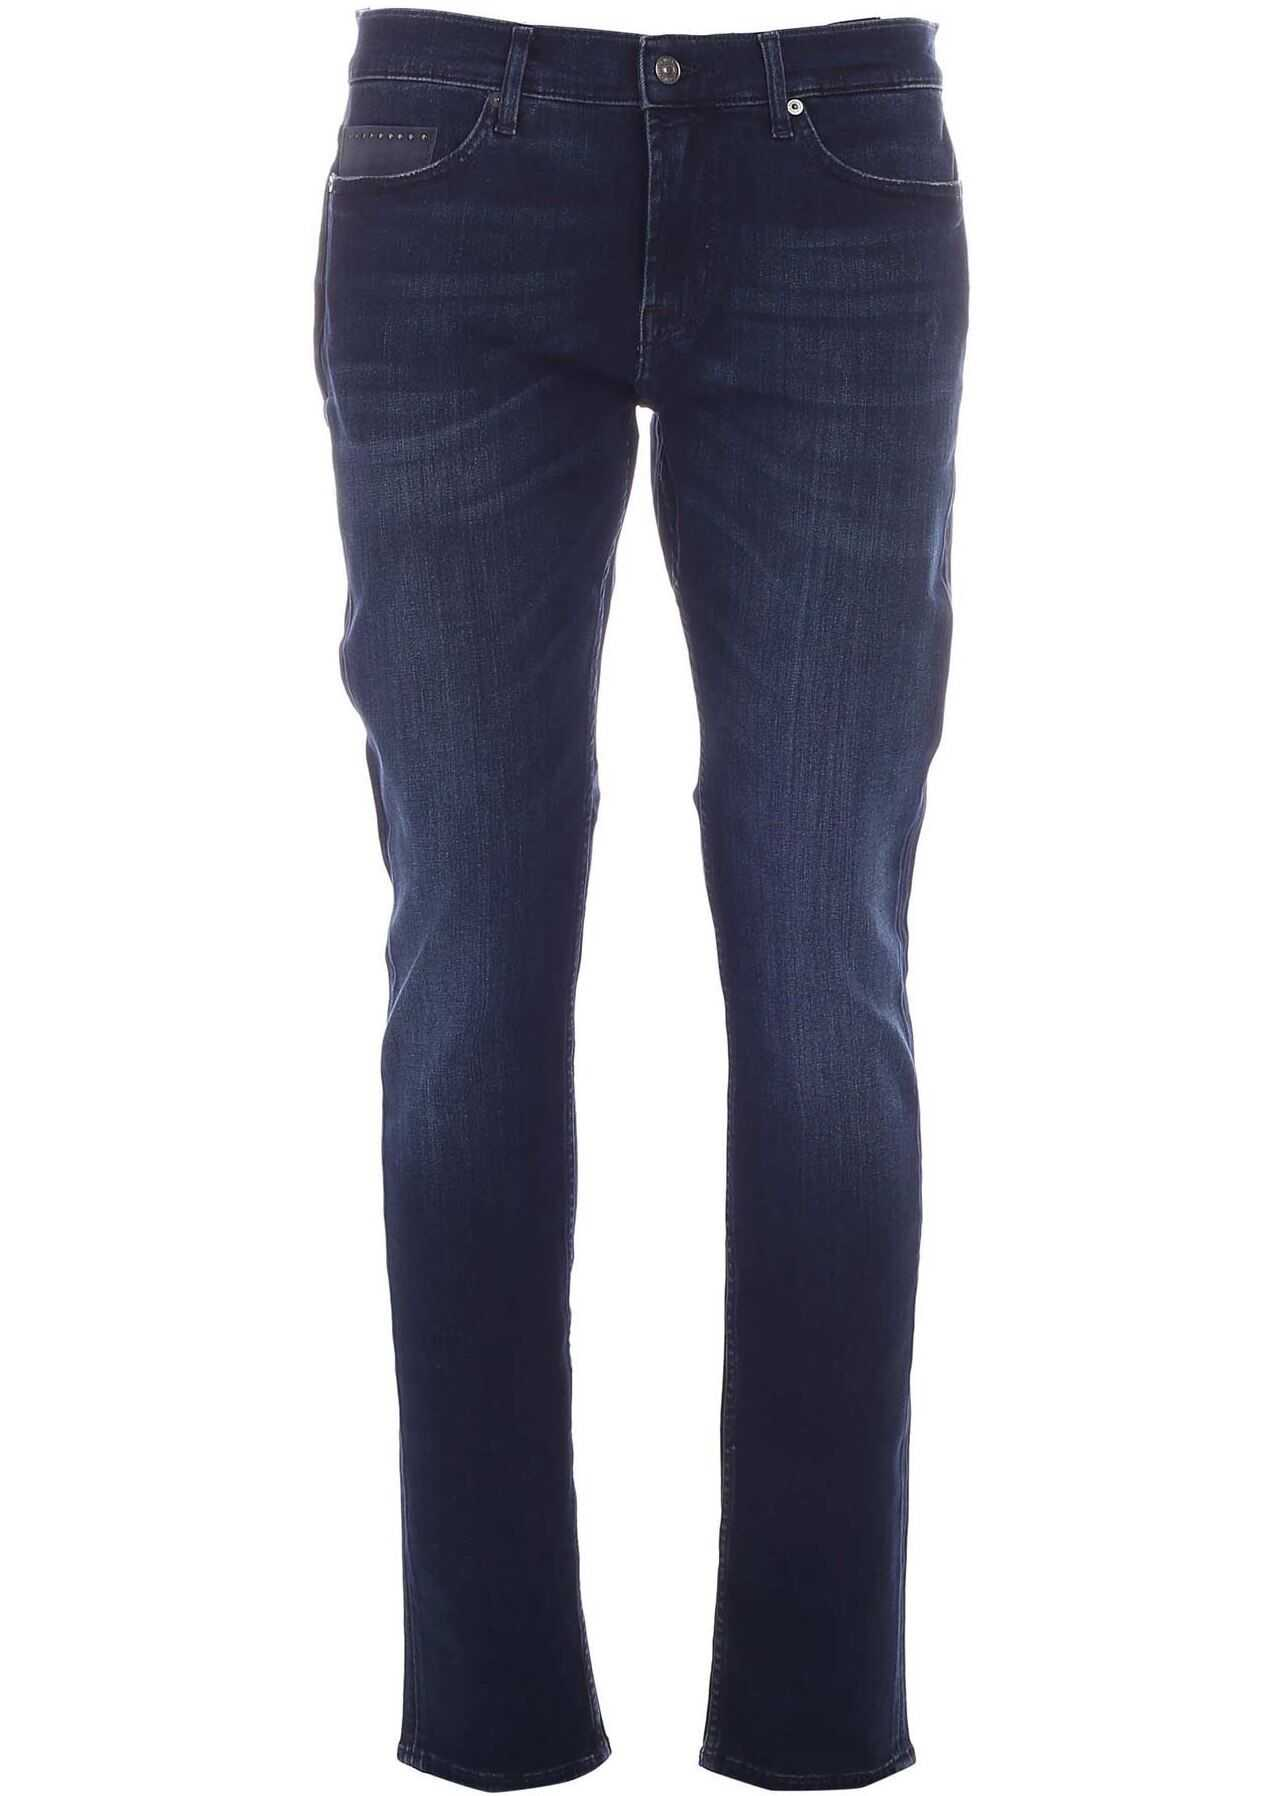 7 For All Mankind Special Edition Ronnie Jeans In Blue Blue imagine